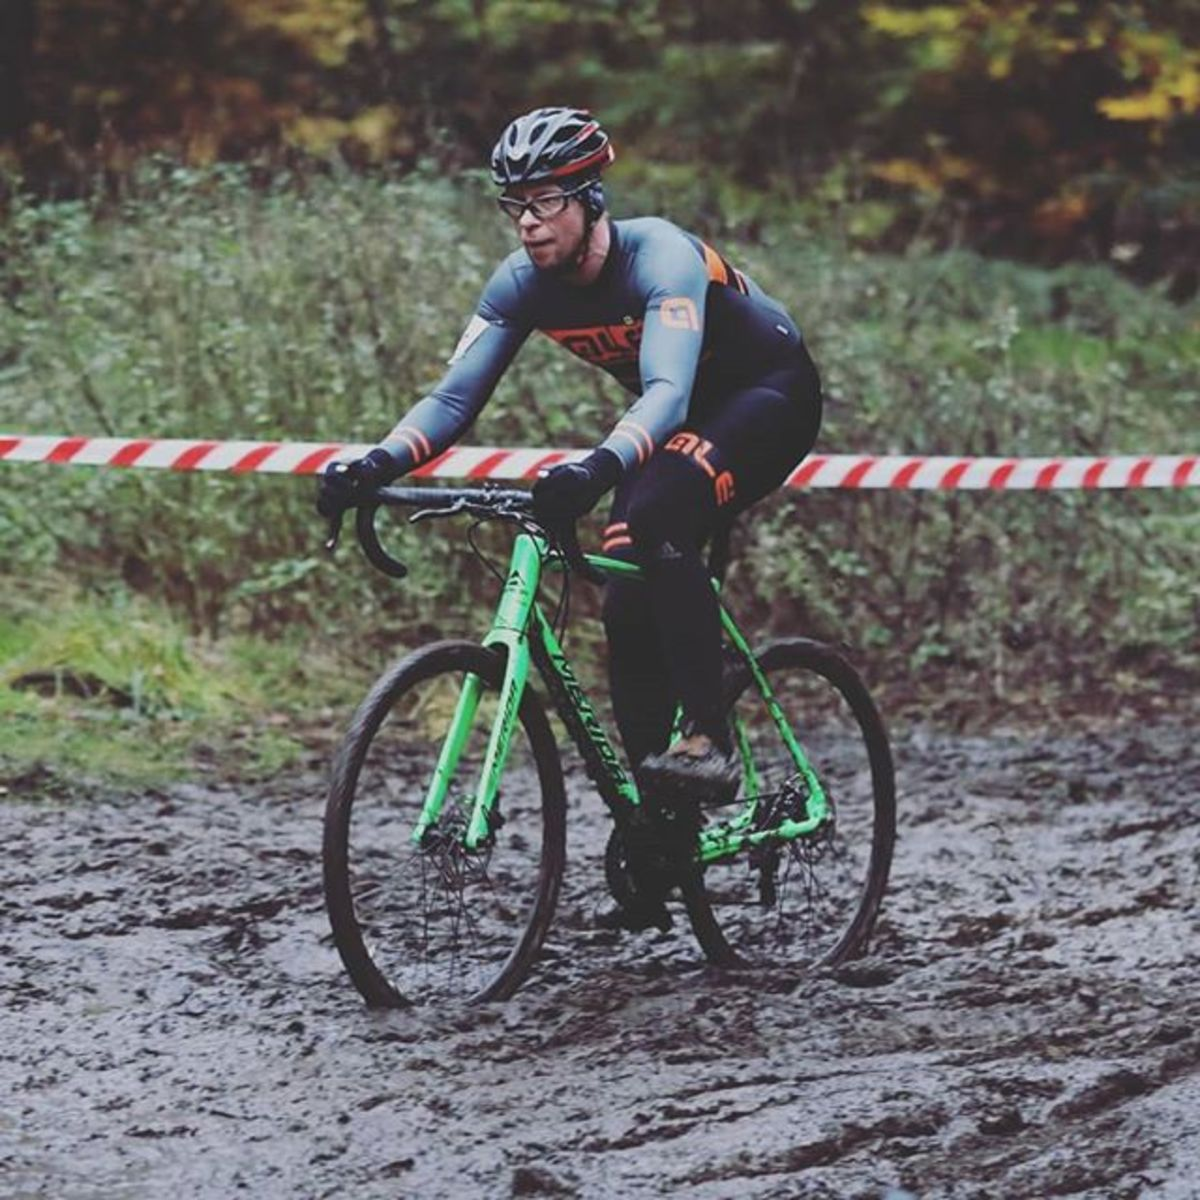 Racing through the mud rolling on Maxxis Mud Wrestler cyclocross tires. Photo courtessy of Mick Bown